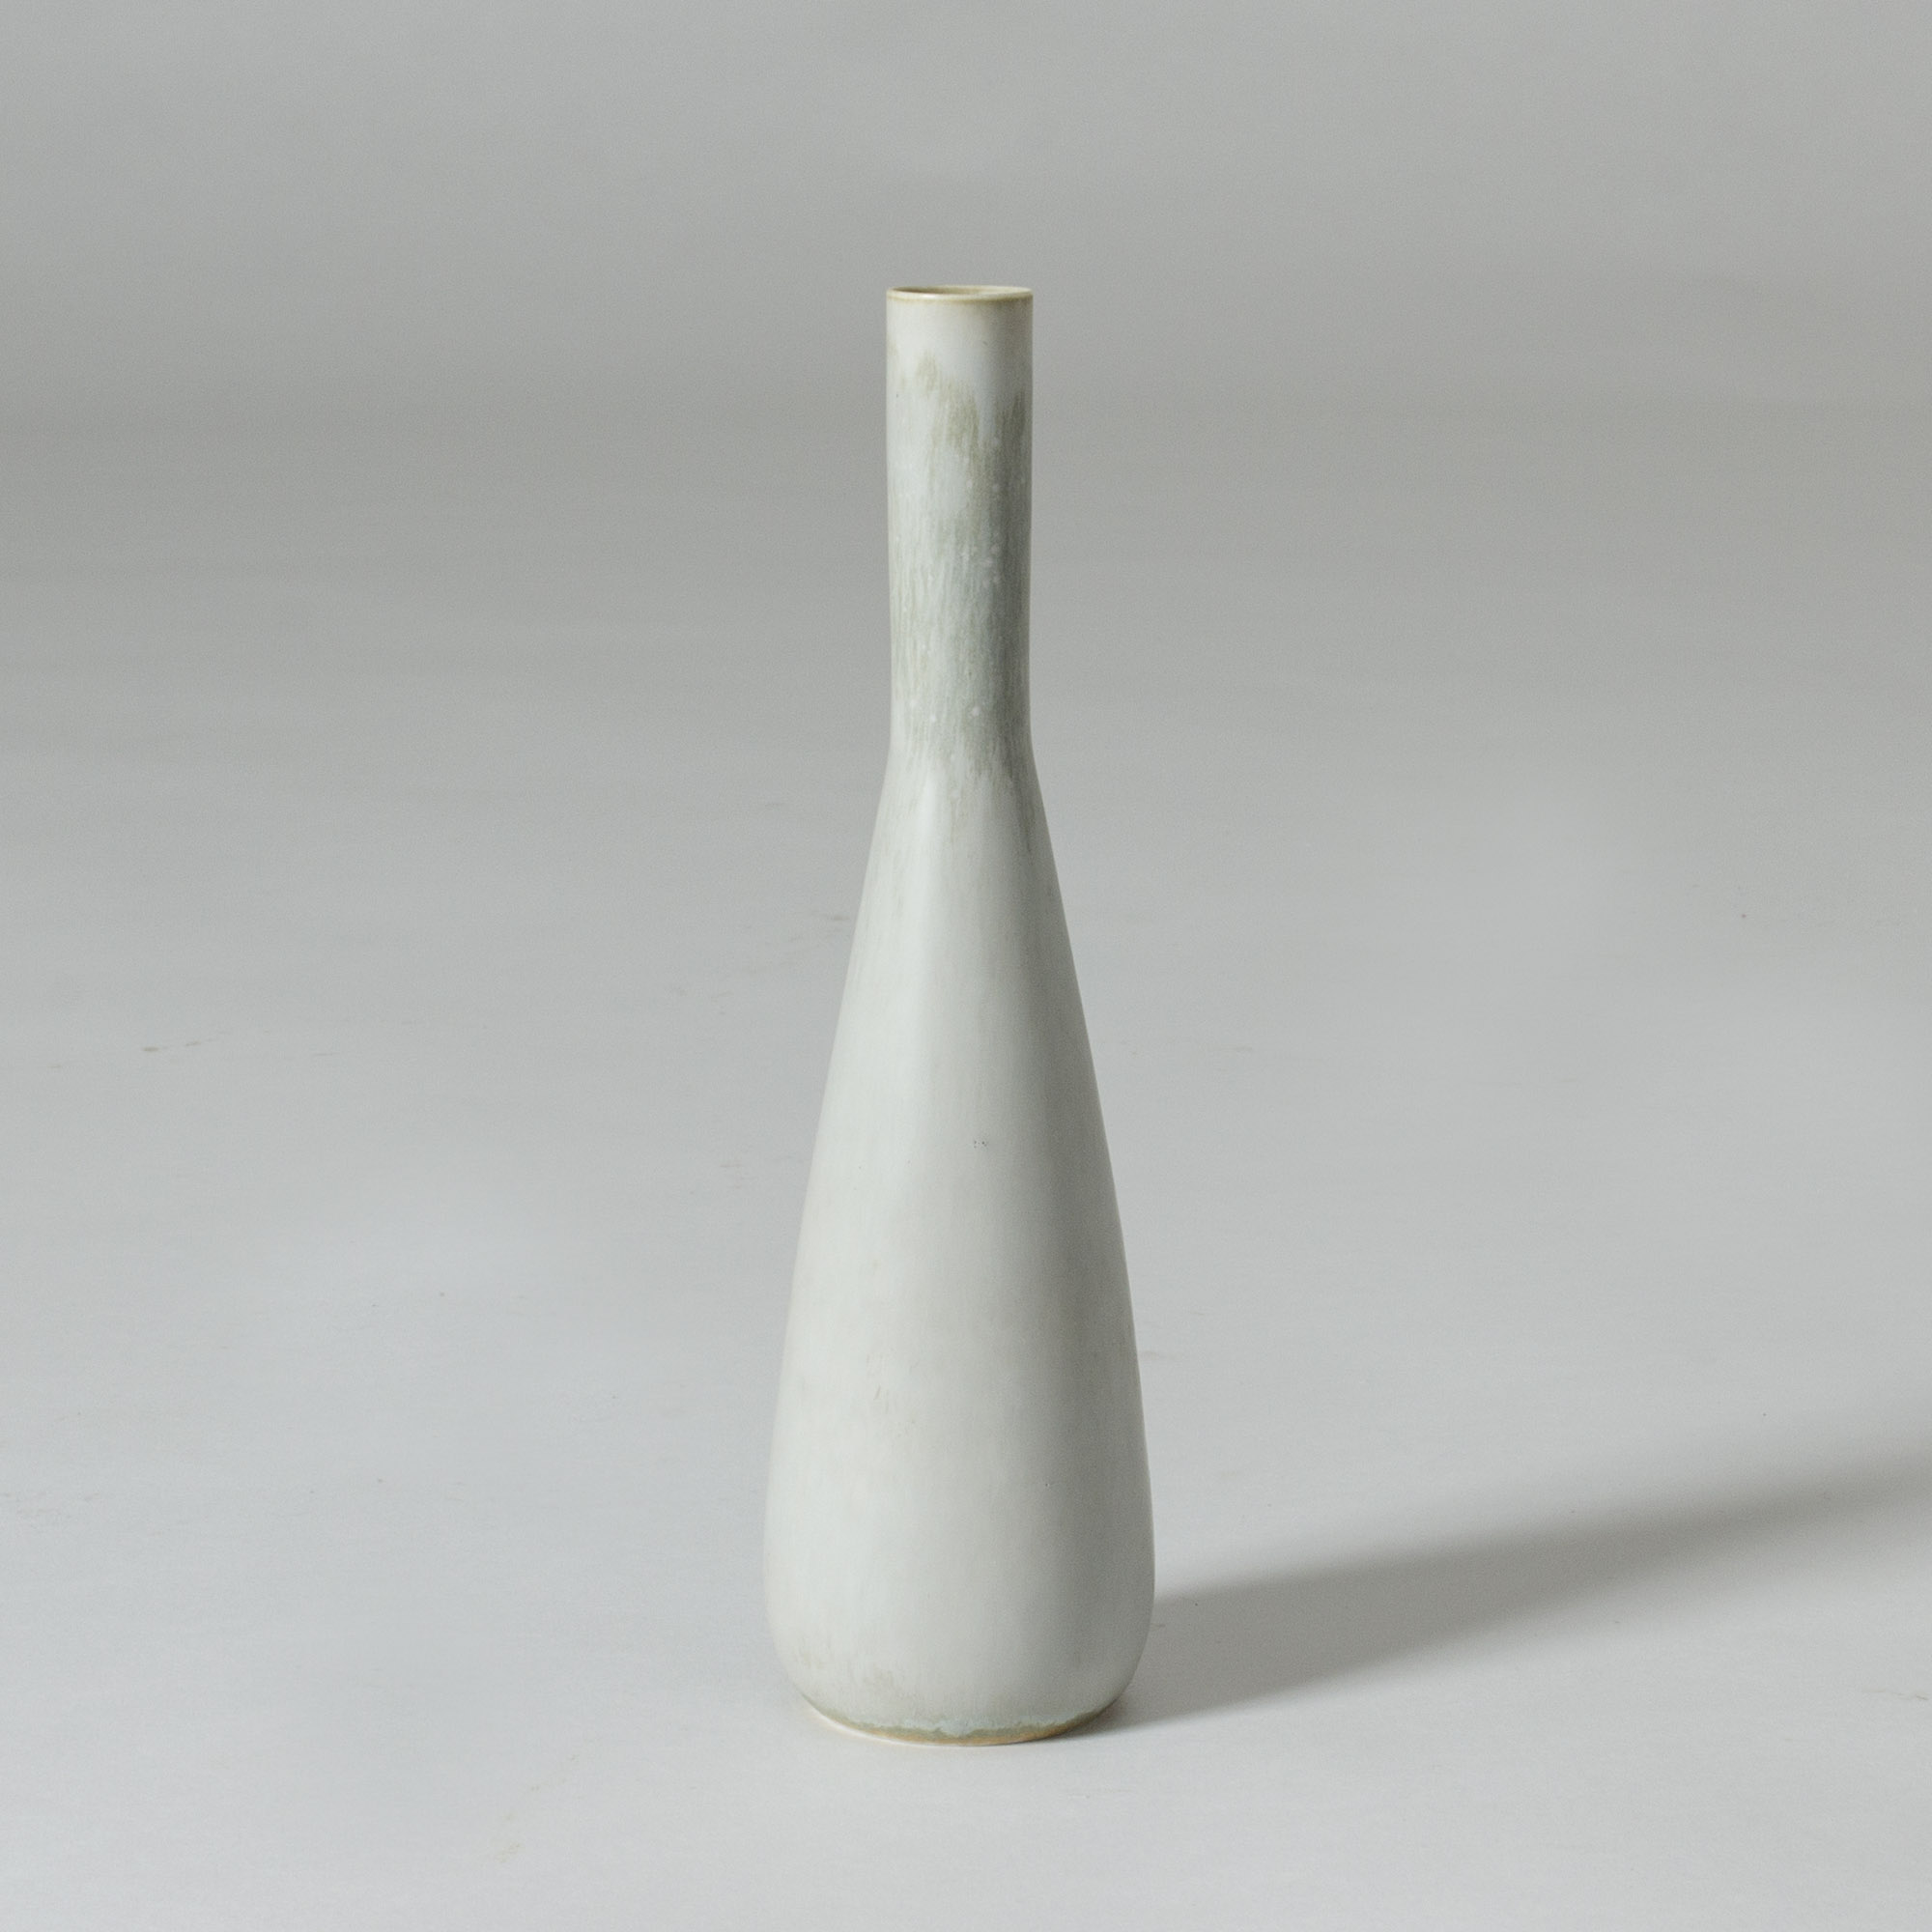 Unique Vases For Sale Unique Vase By Carl Harry Stålhane Vintage Mid Century